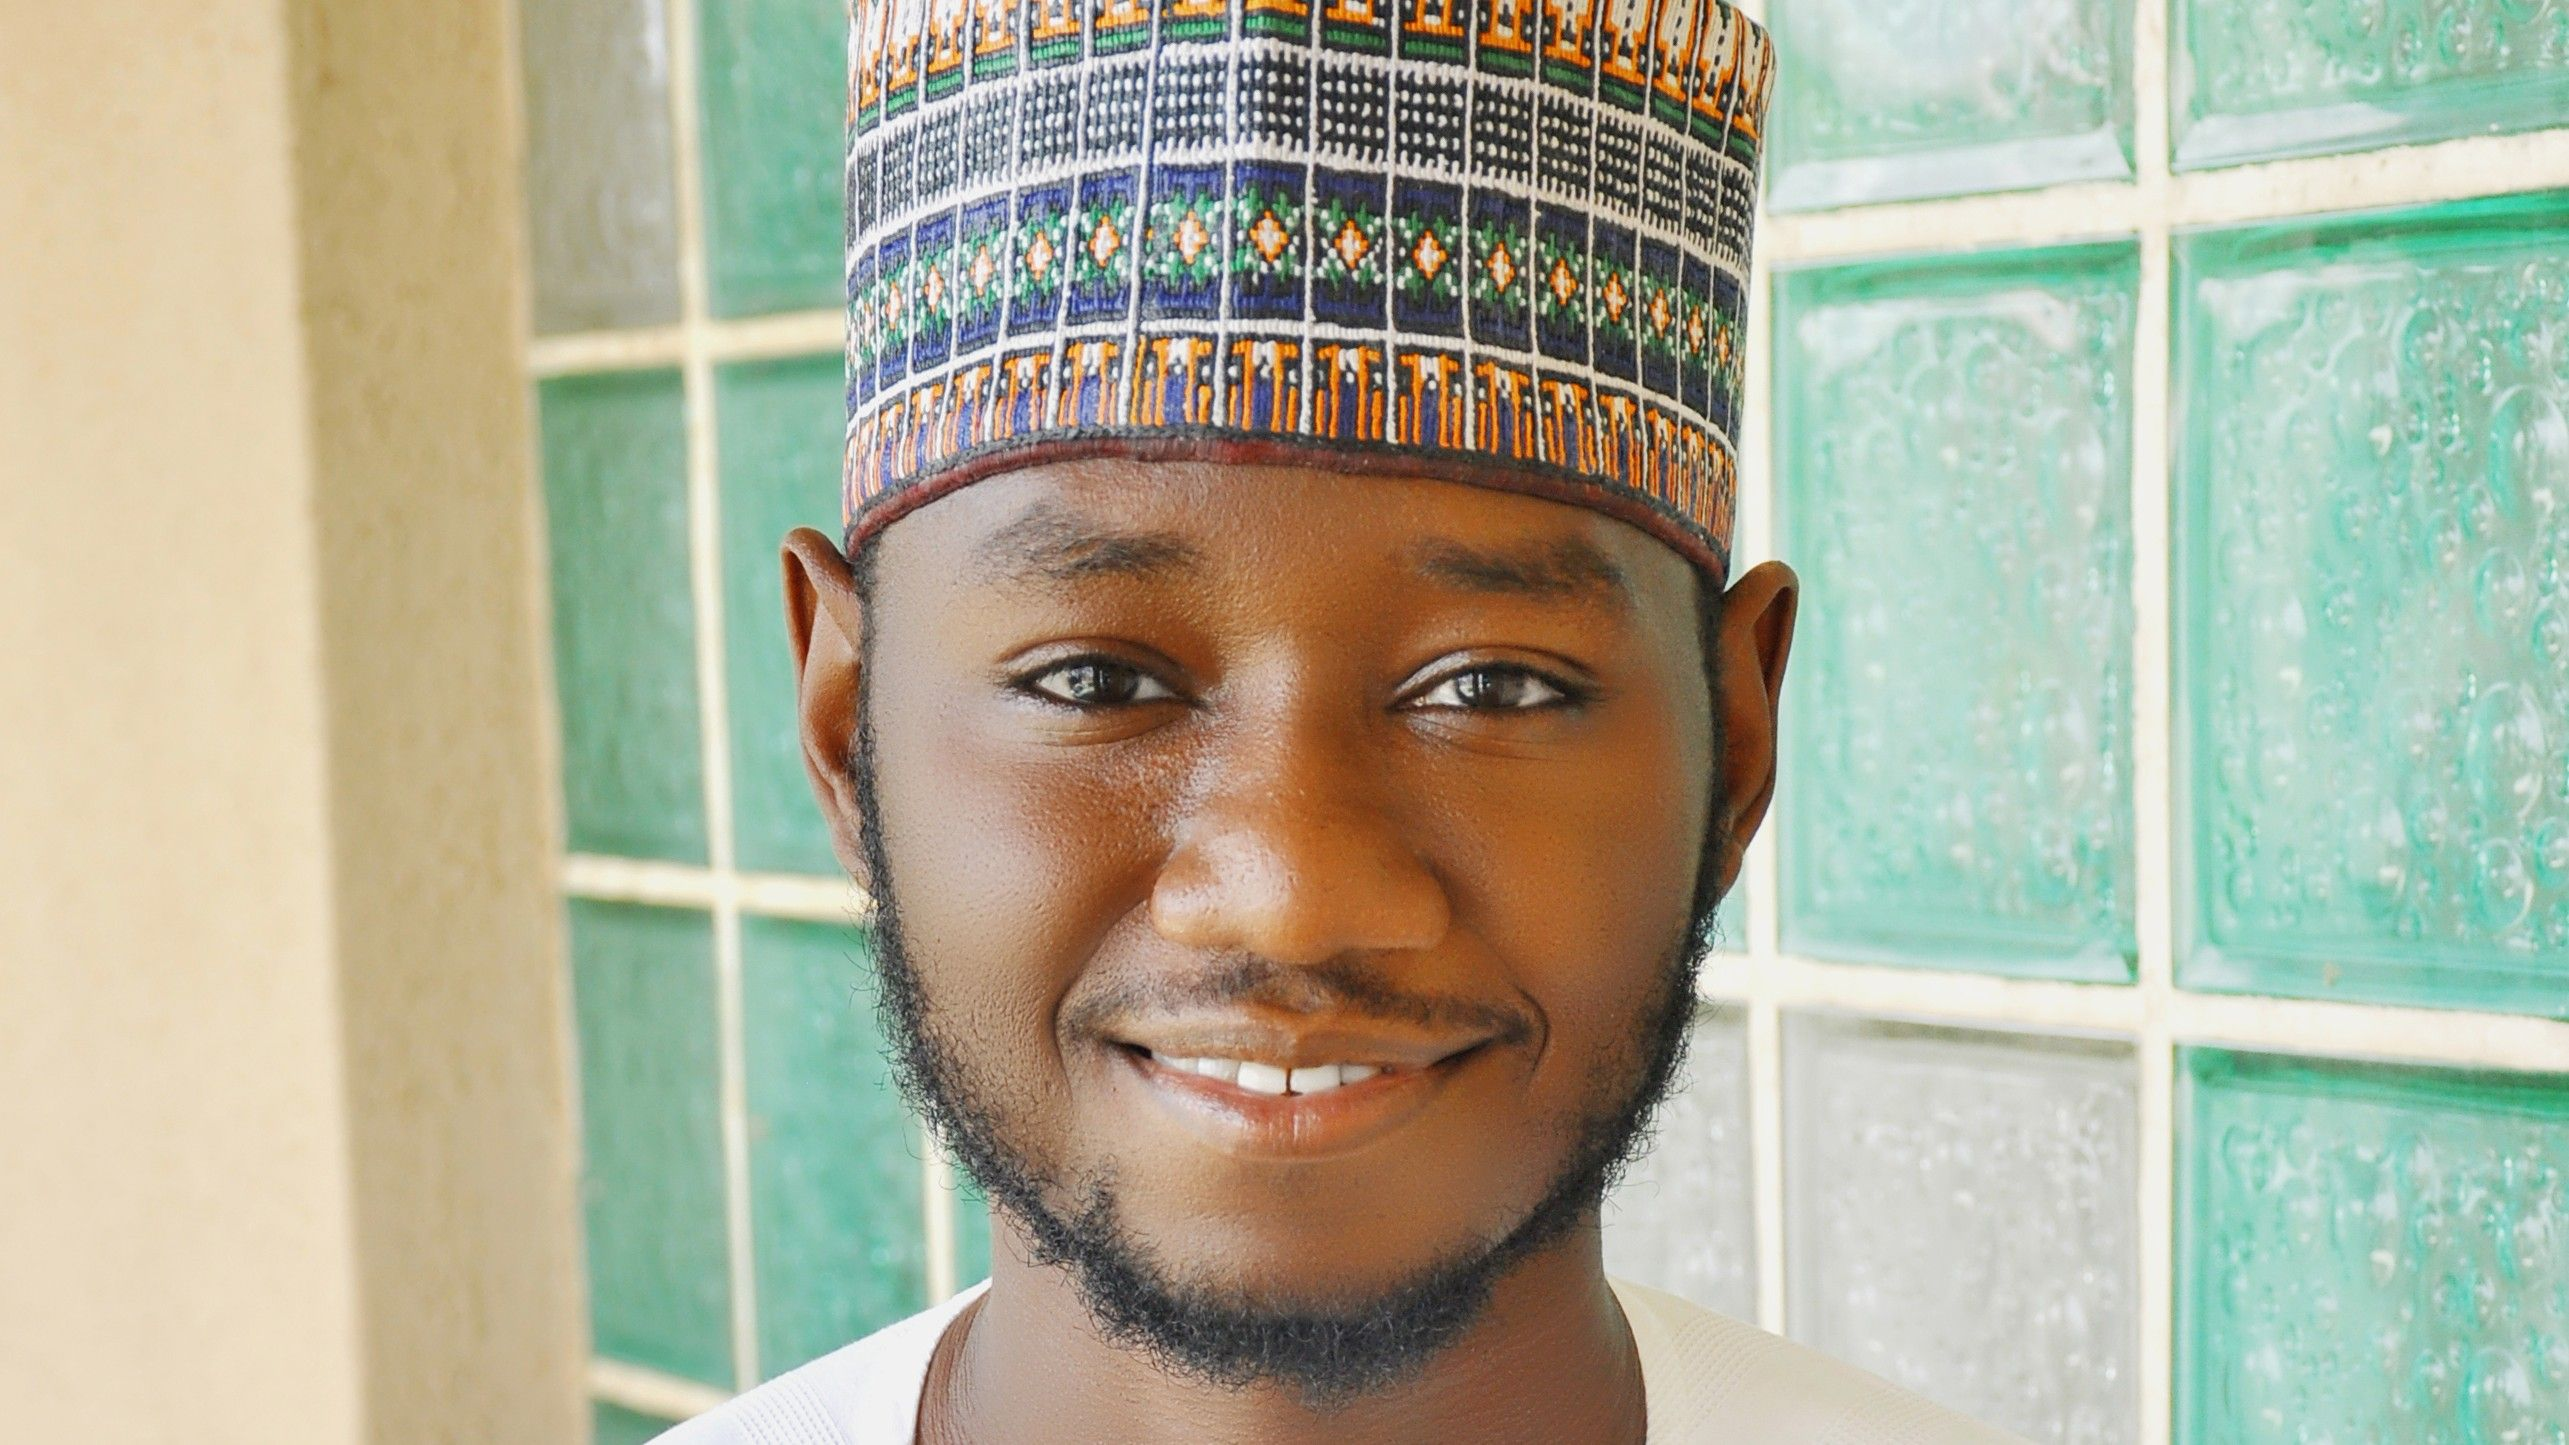 Abubakar Sadiq, Bachelor of Computer Science and Master of Management alumnus and Managing Director of Falgates